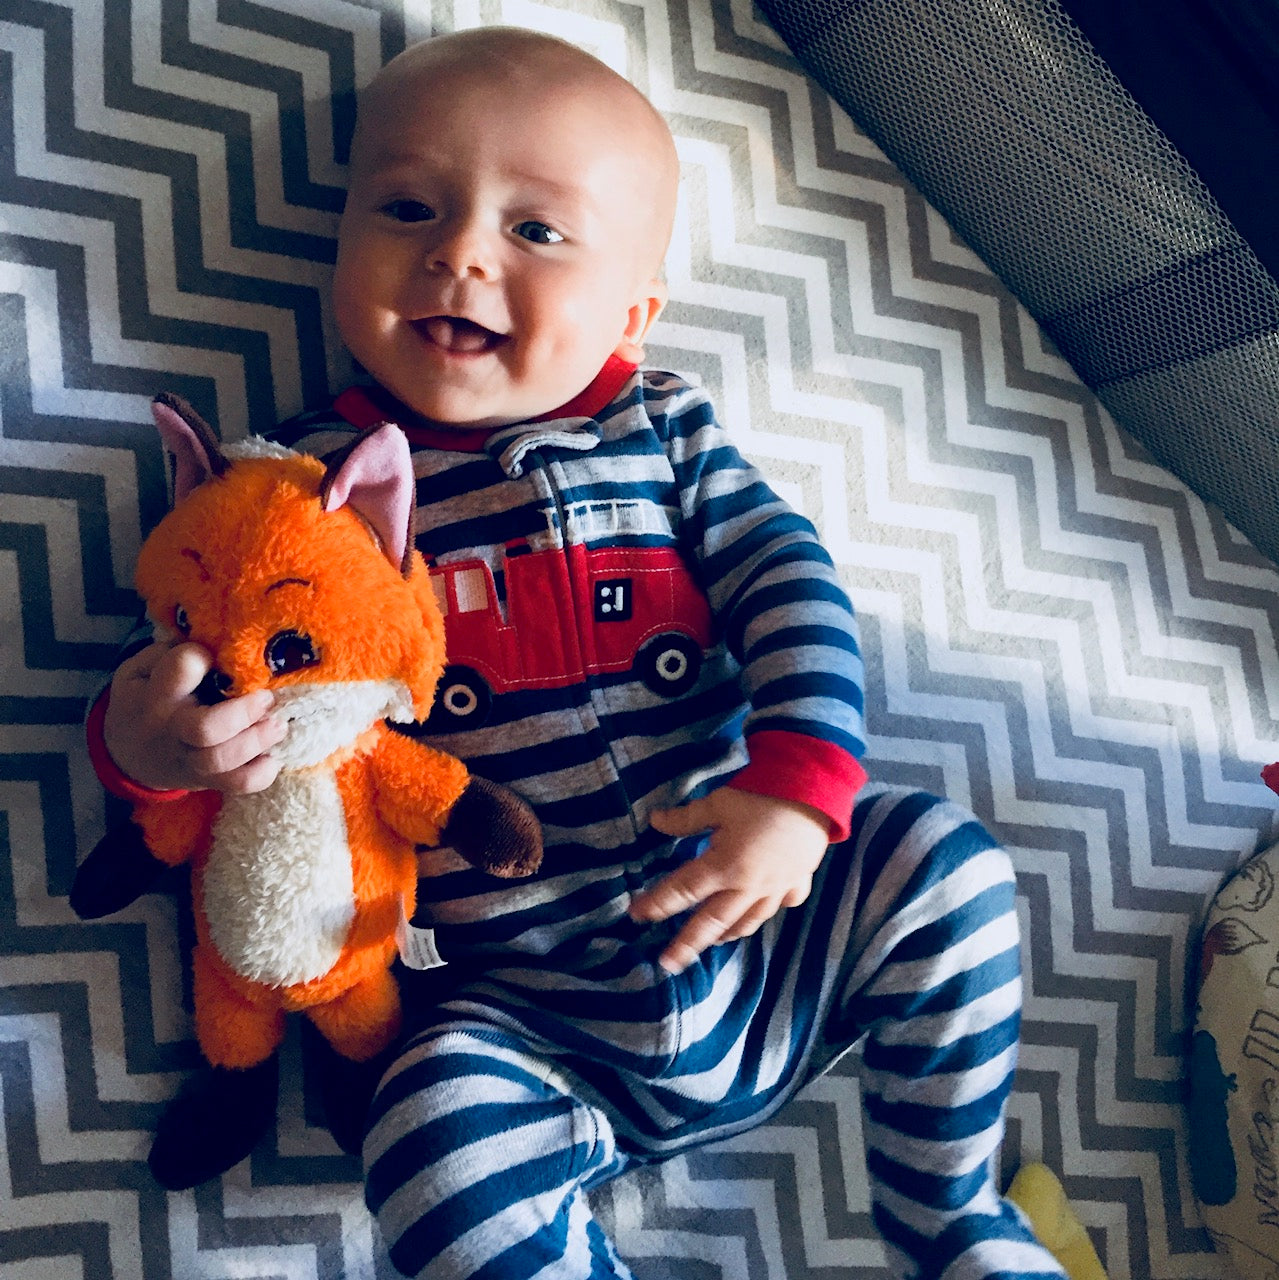 A baby boy holding a plush Rocco and smiling at the camera